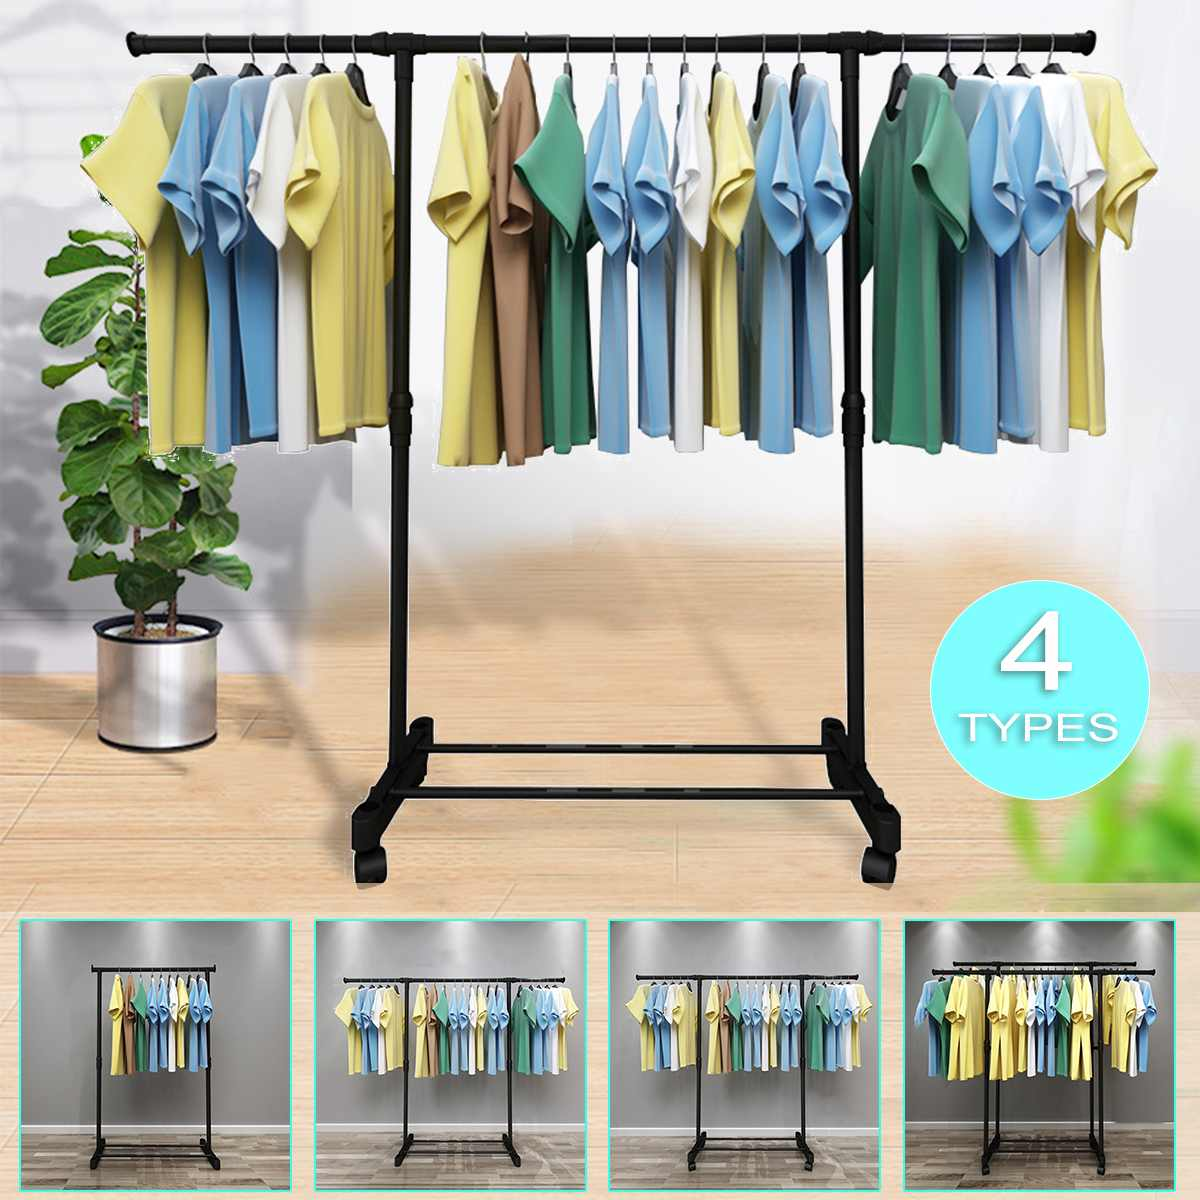 Coat Rack Thicken Steel 30KG Load Easy Assembly Removable Wheeled Bedroom Clothes Hanger Drying Furniture Clothes Hanger Stand